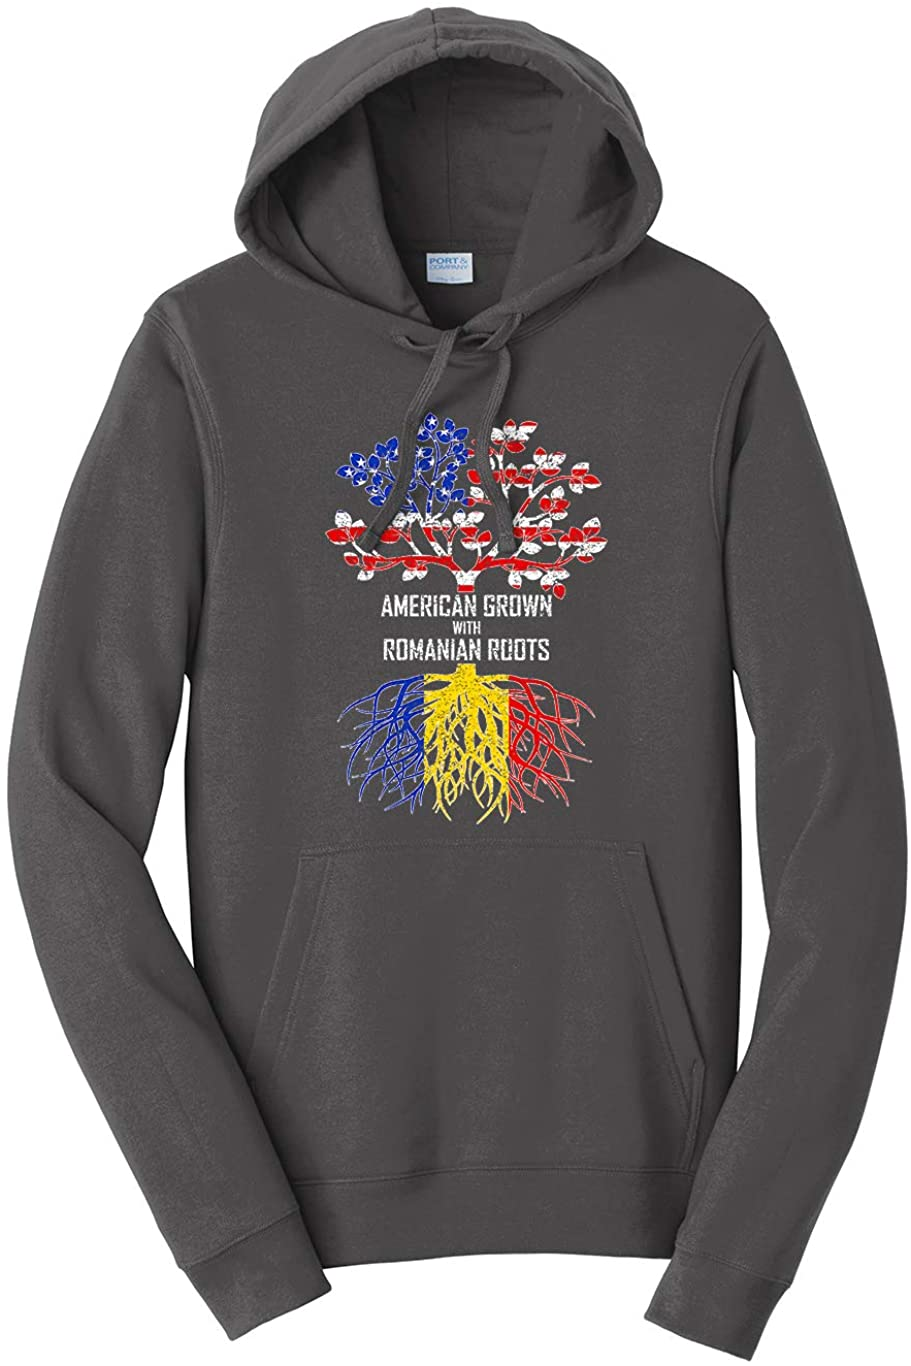 Tenacitee Unisex American Grown with Romanian Roots Hooded Sweatshirt